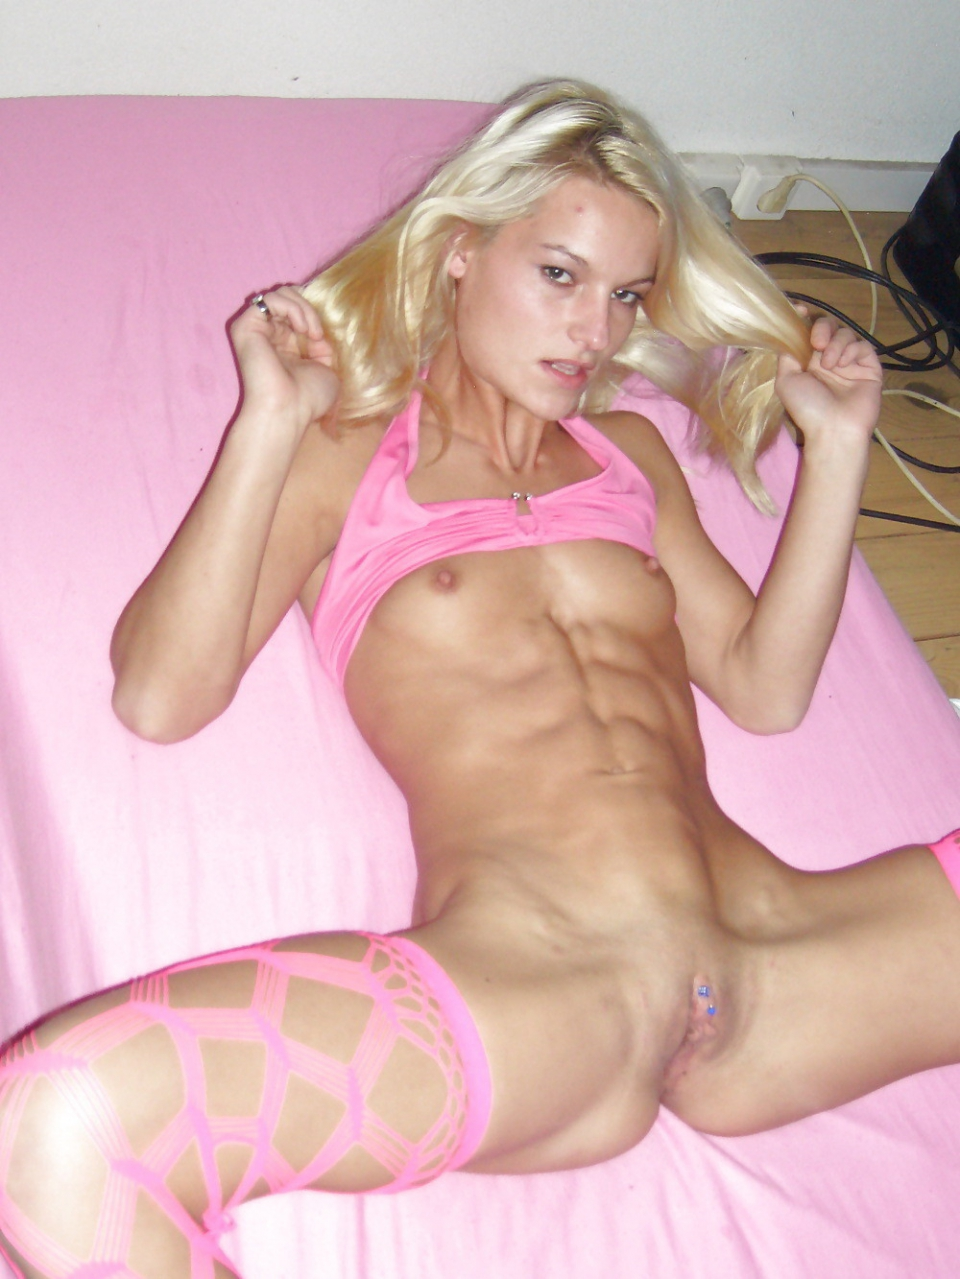 Excited too Sexy girls nude abs have